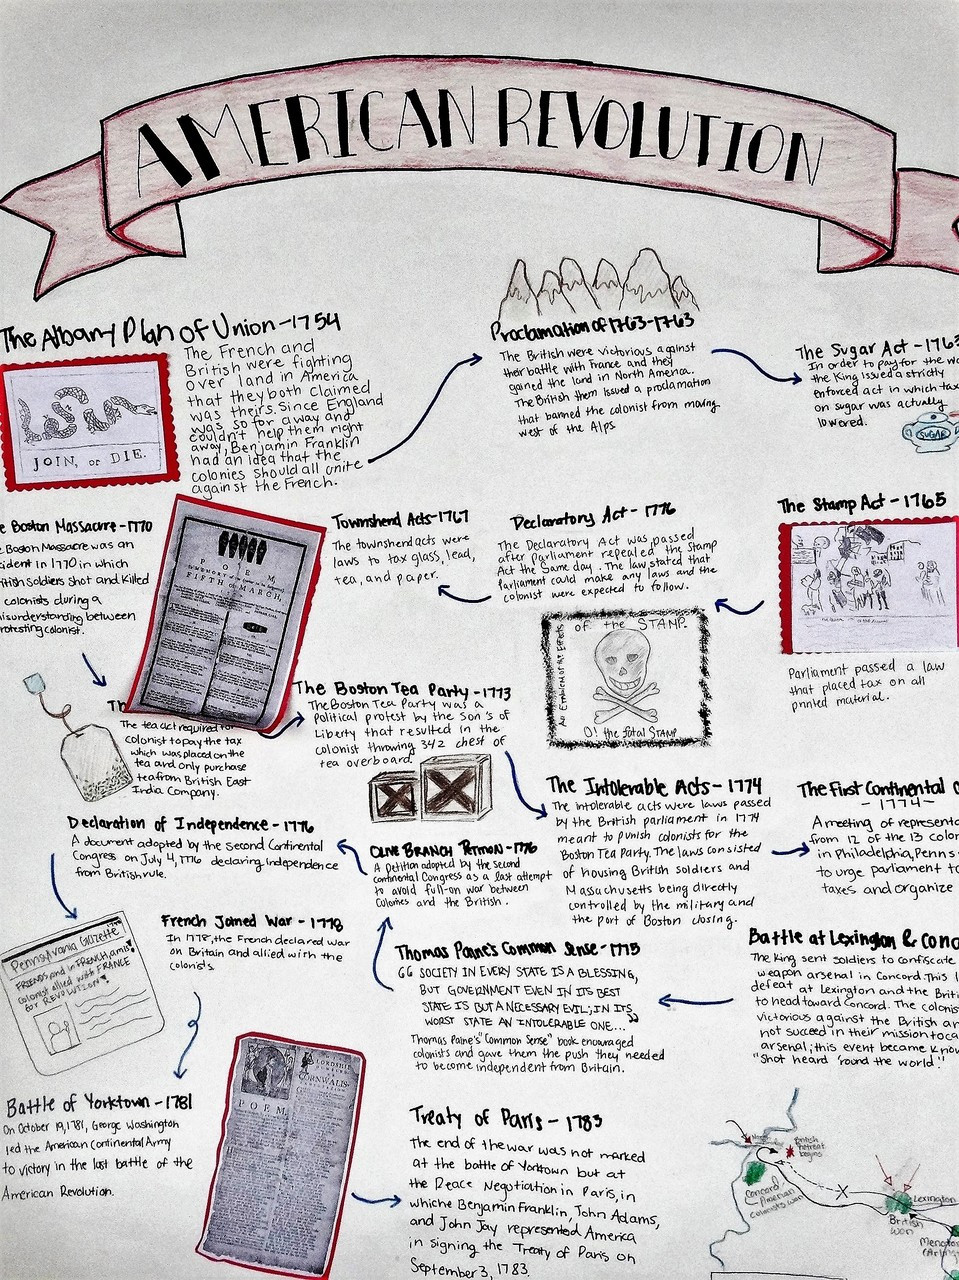 medium resolution of Project: American Revolution Annotated Timeline - Amped Up Learning